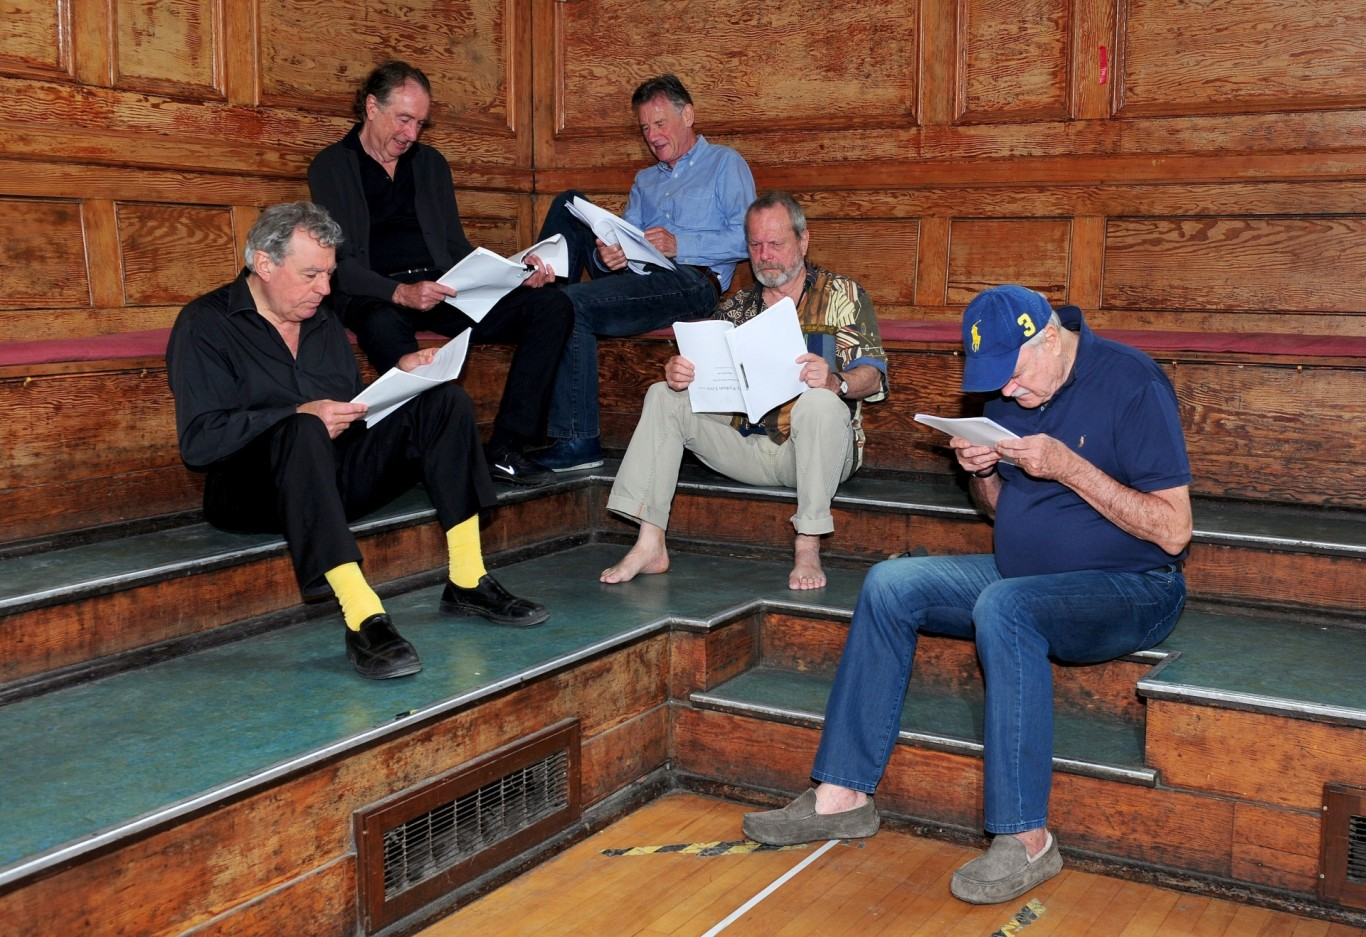 The Pythons rehearsing for Monty Python Live (Mostly)